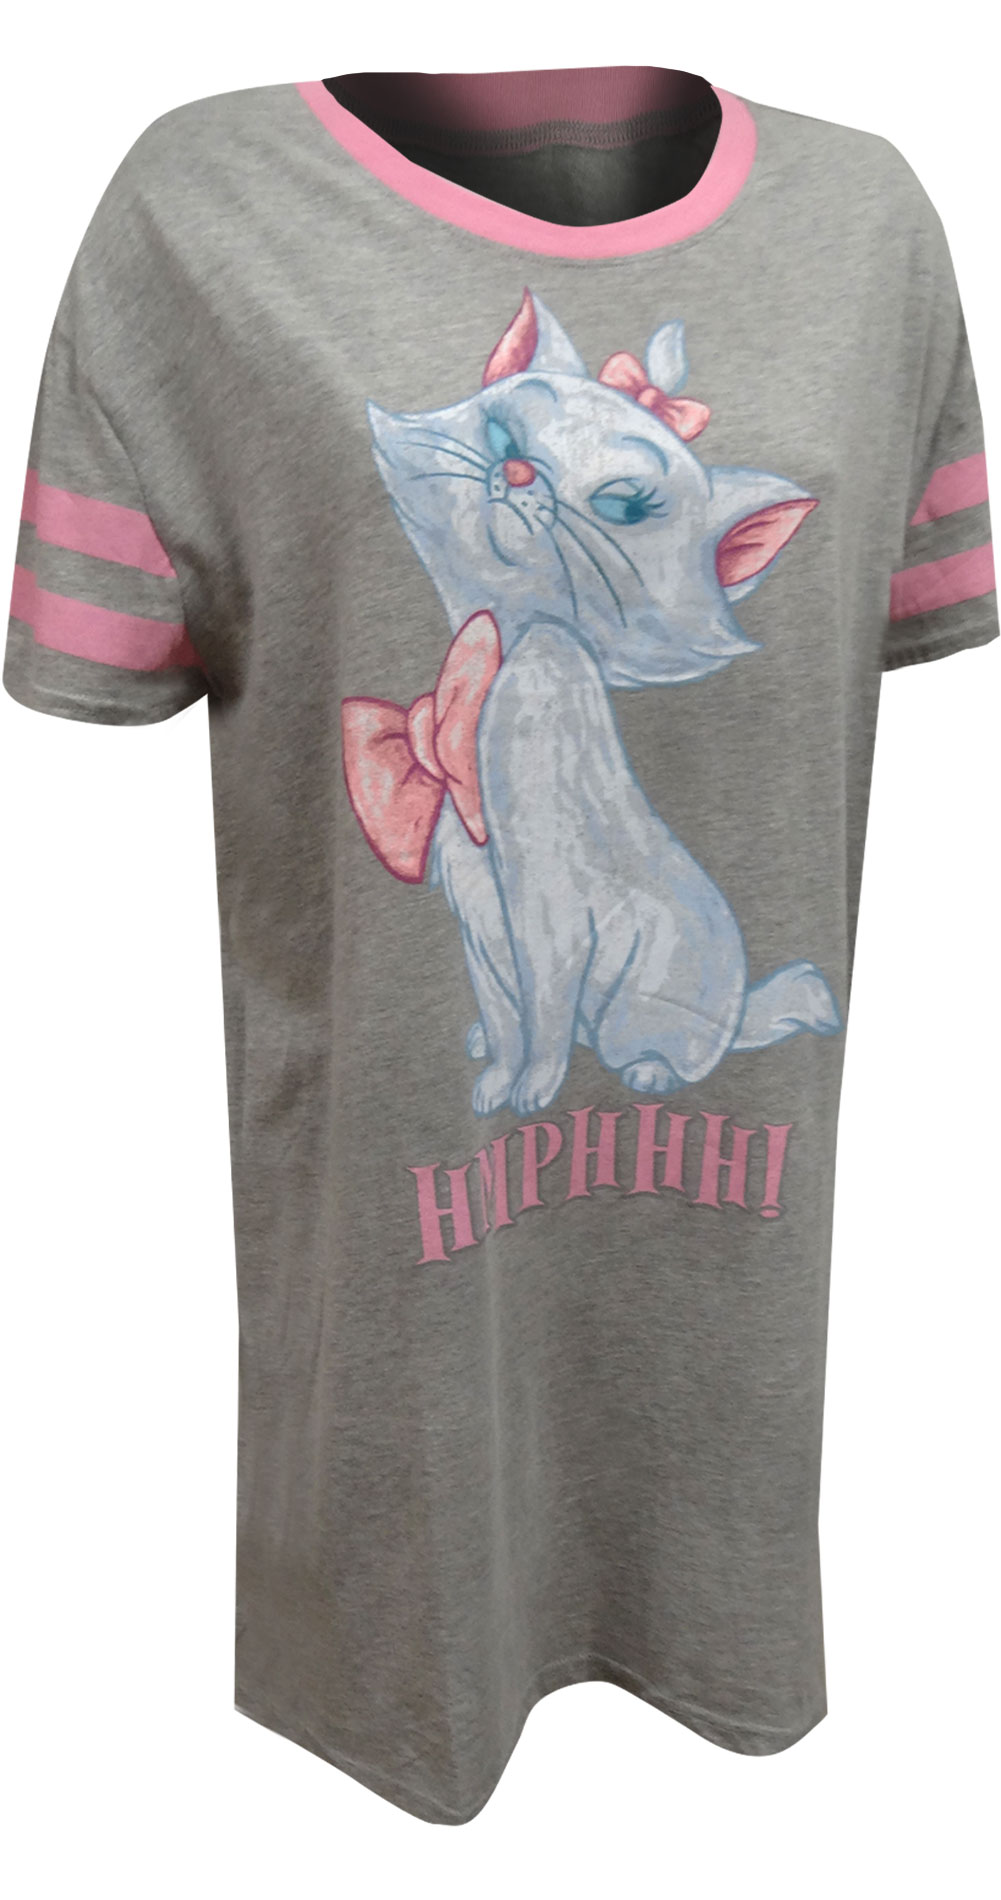 Image of Disney's Aristocats Marie Hmphhh Plus Size Nightshirt for women